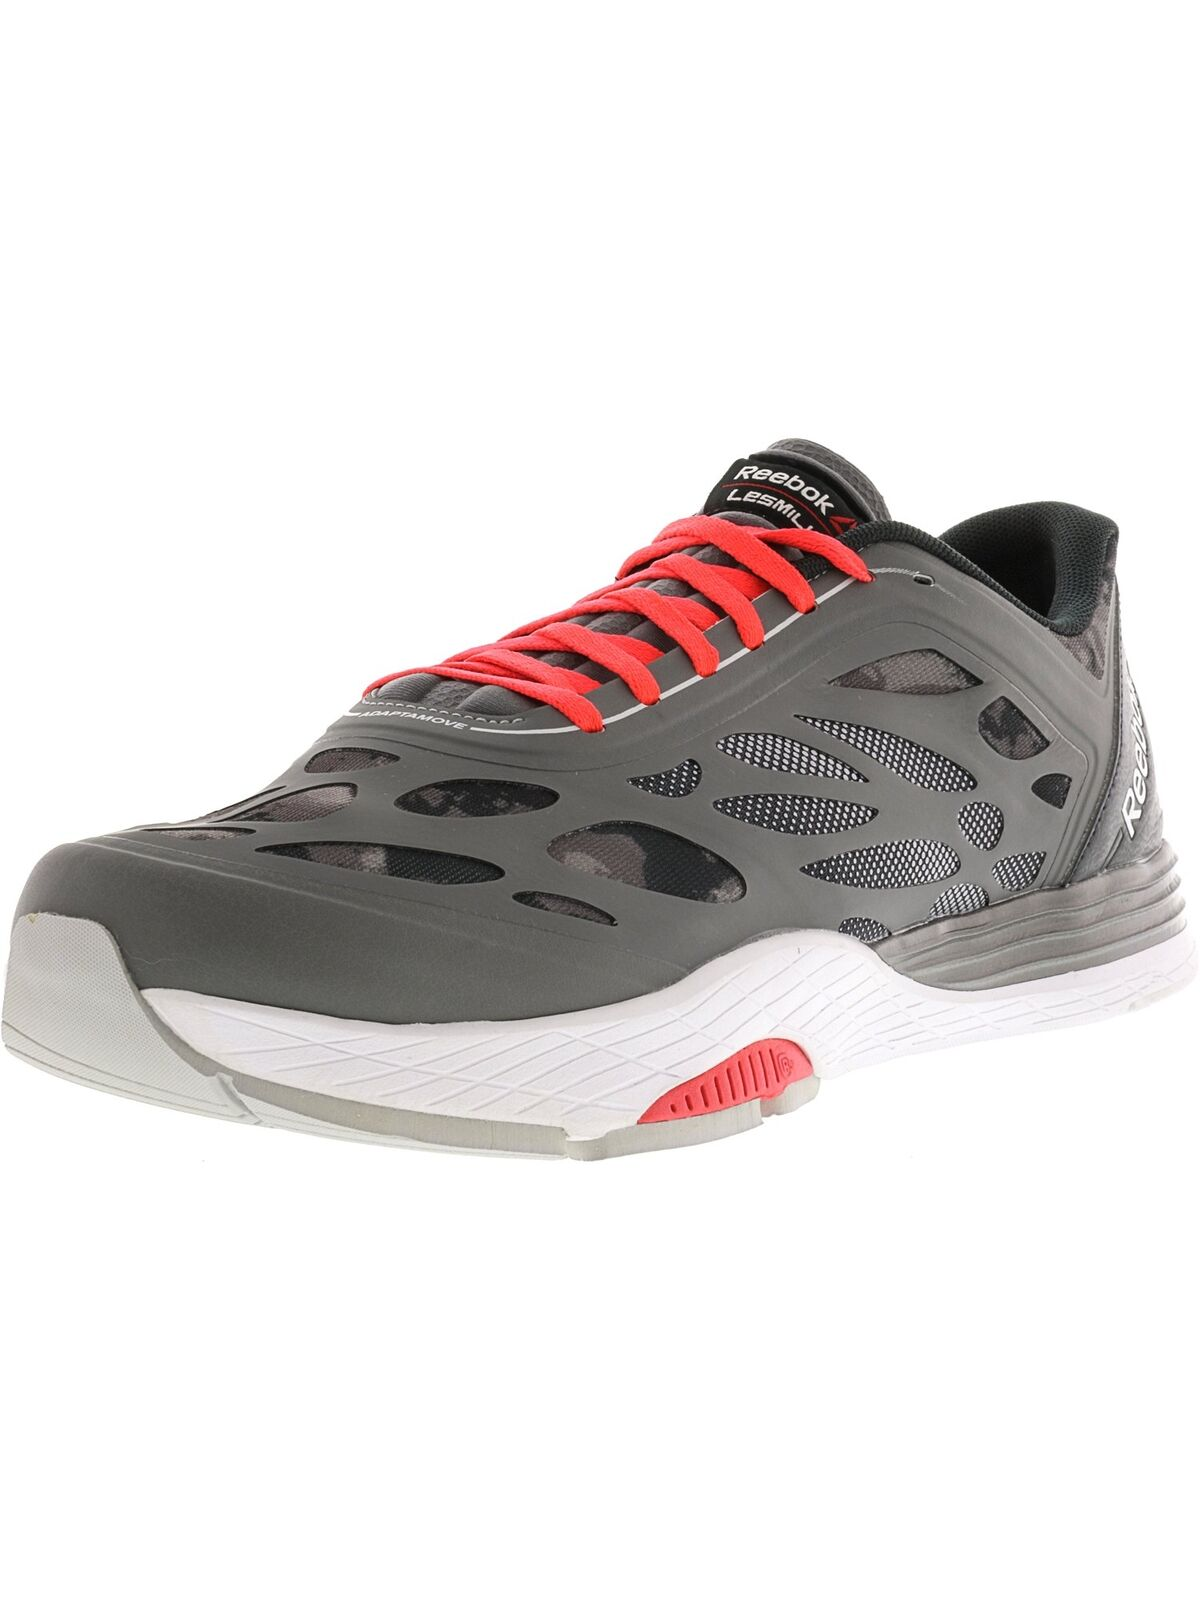 Reebok Men's Lm Cardio Ultra Ankle-High Running shoes